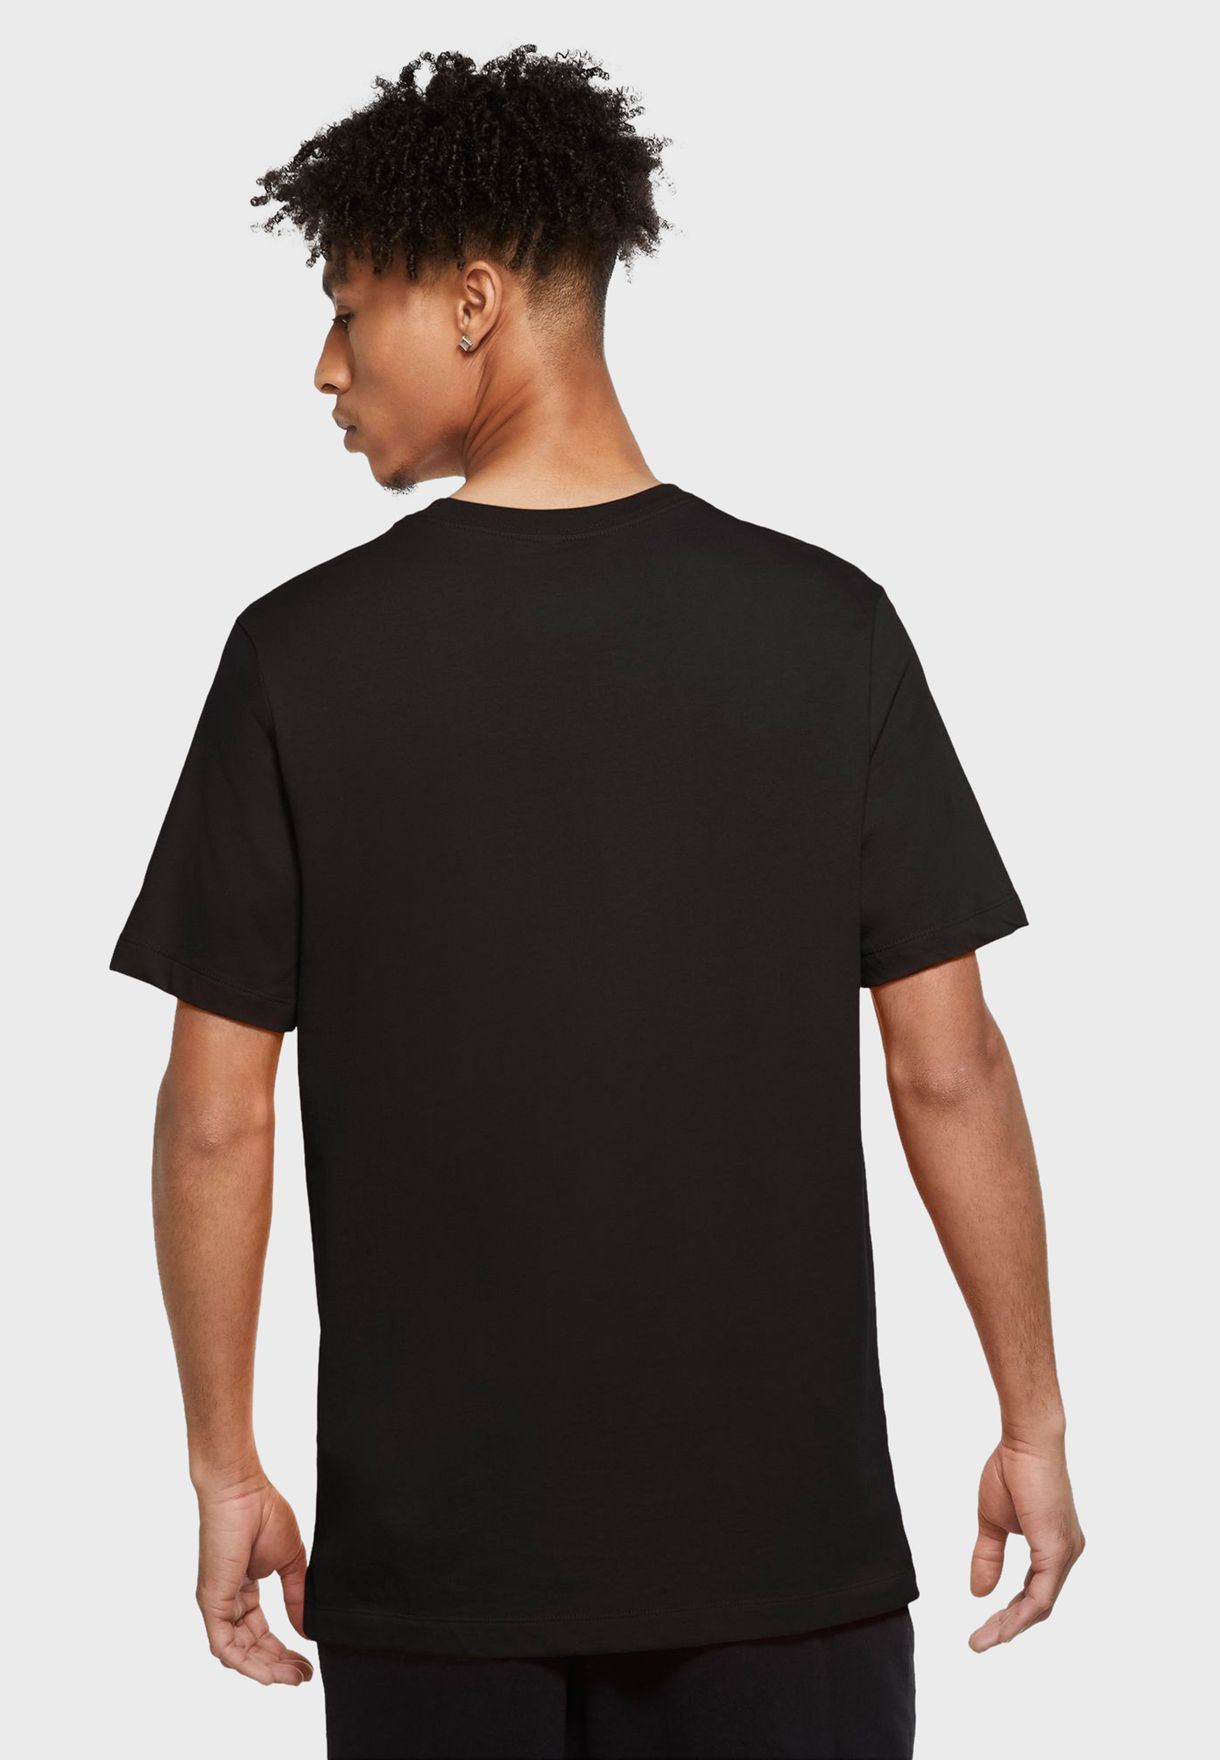 NSW 2 Swoosh T-Shirt